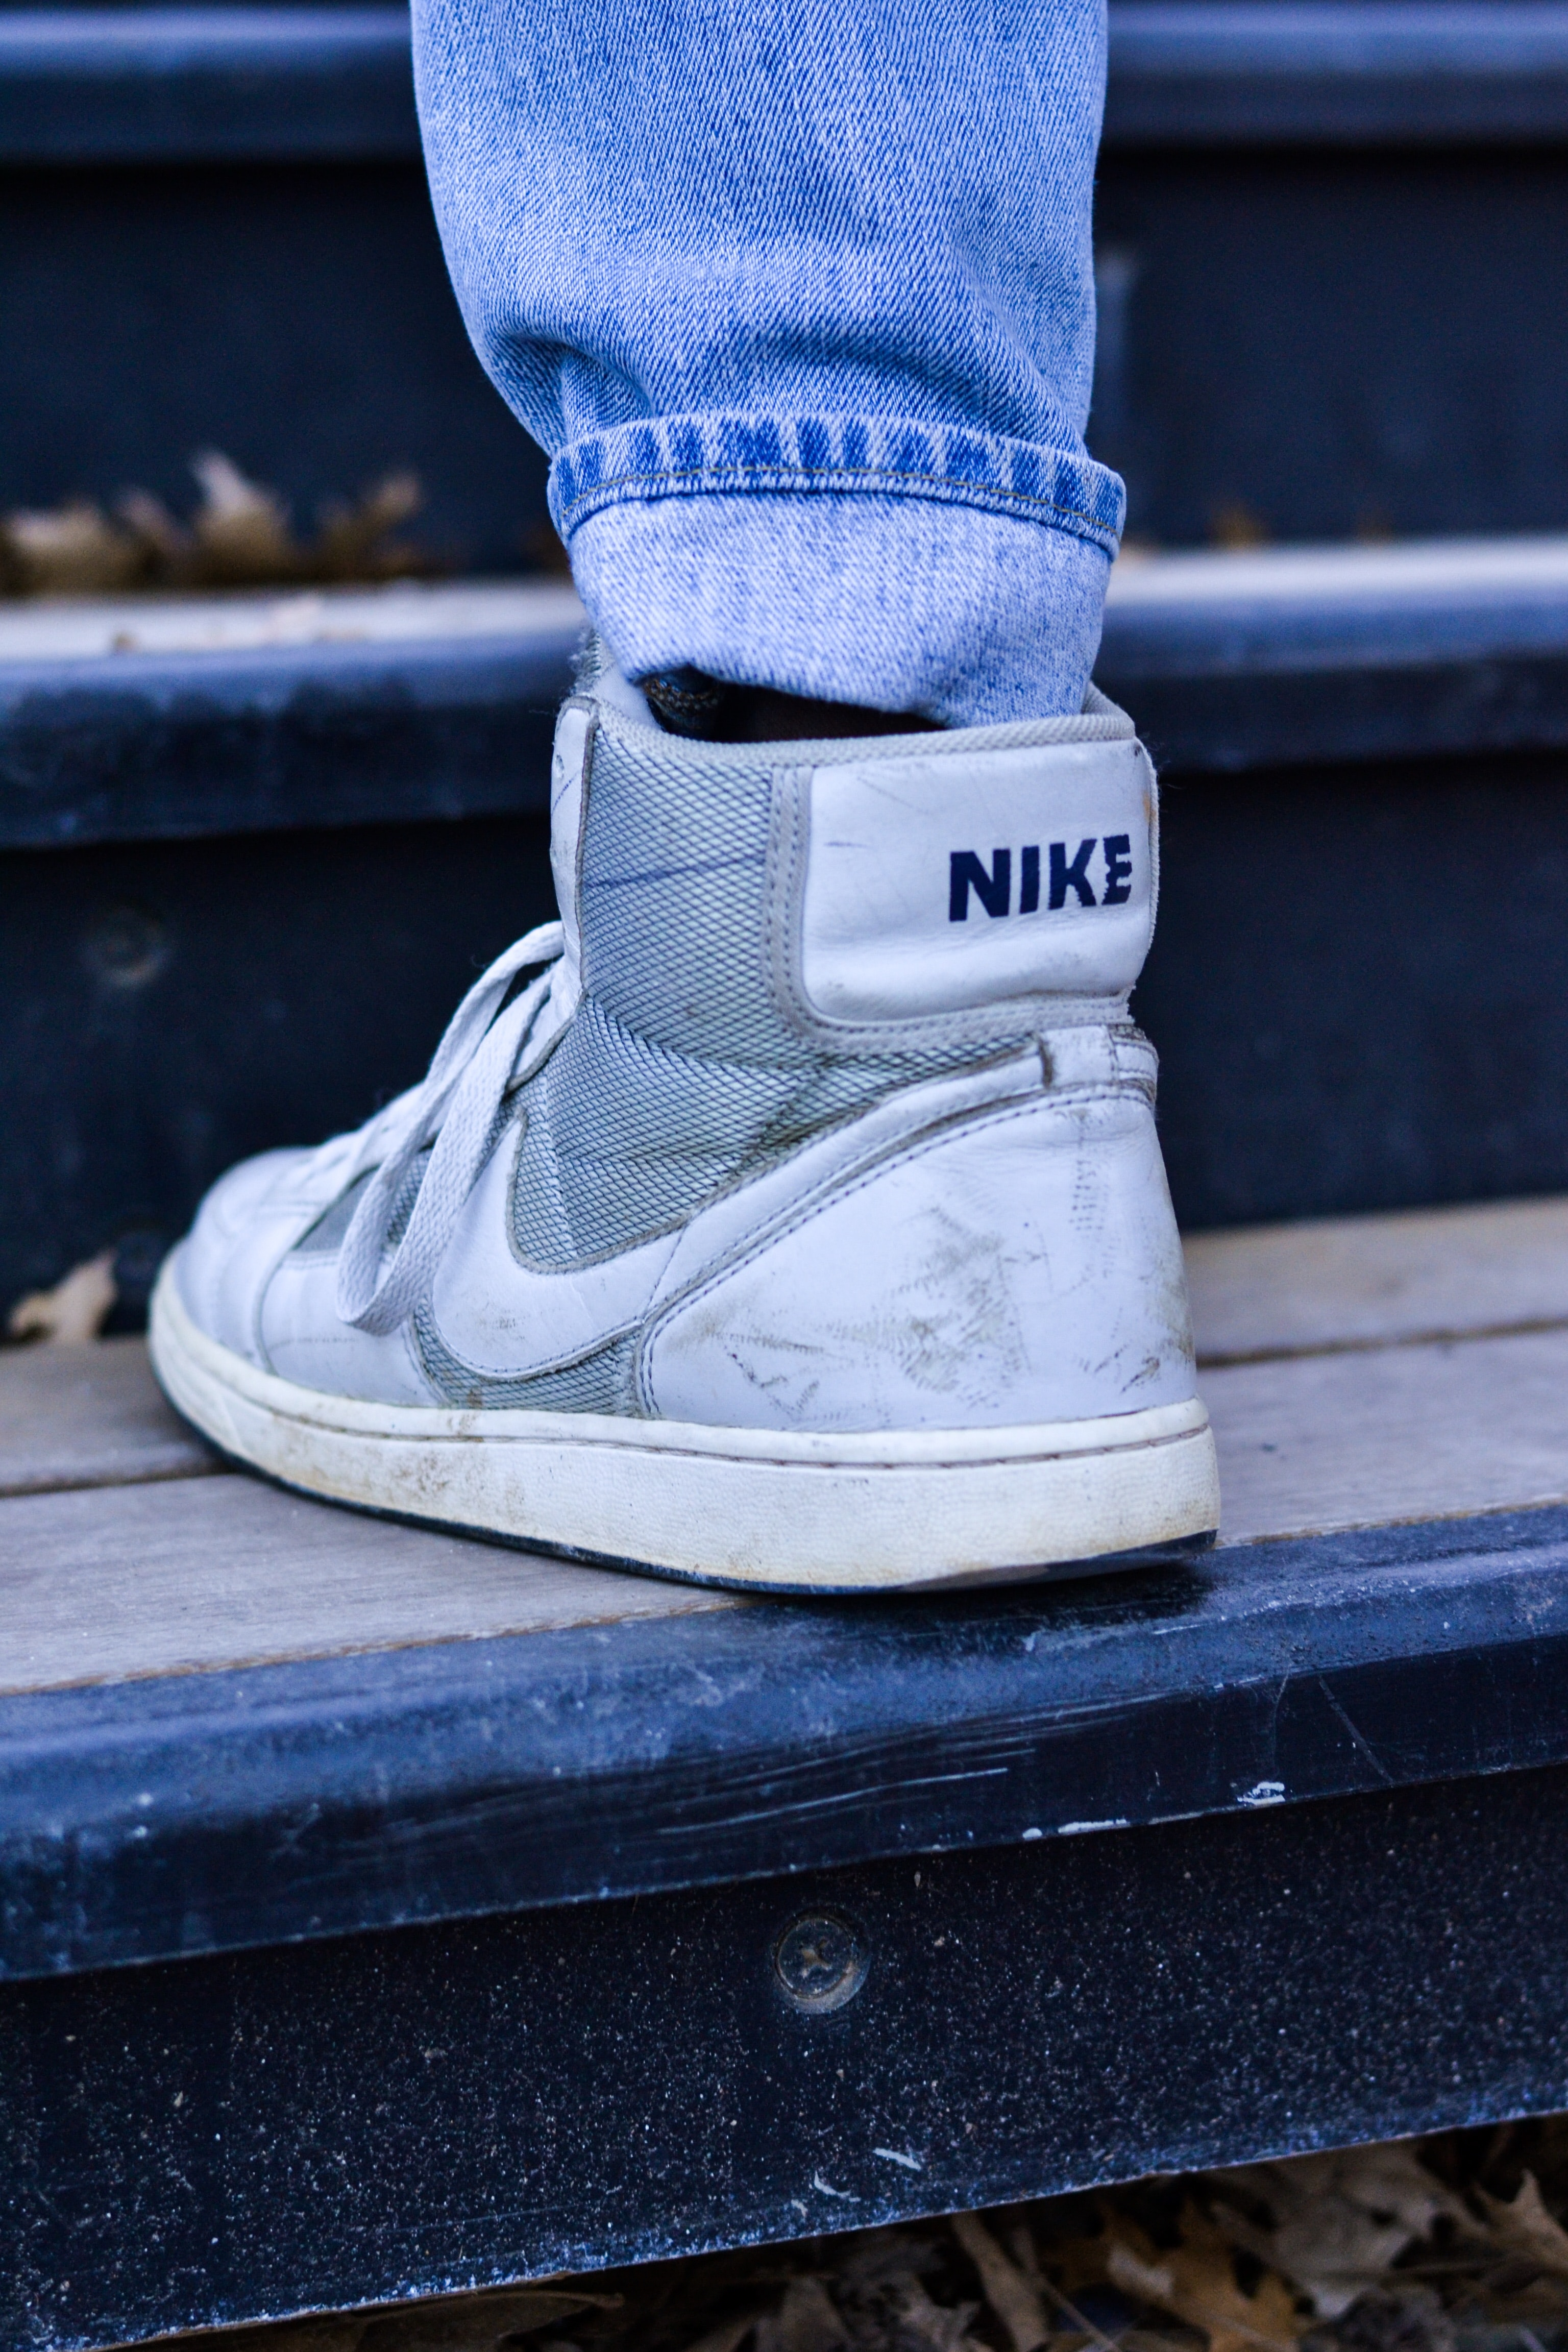 person wearing white and gray Nike sneakers